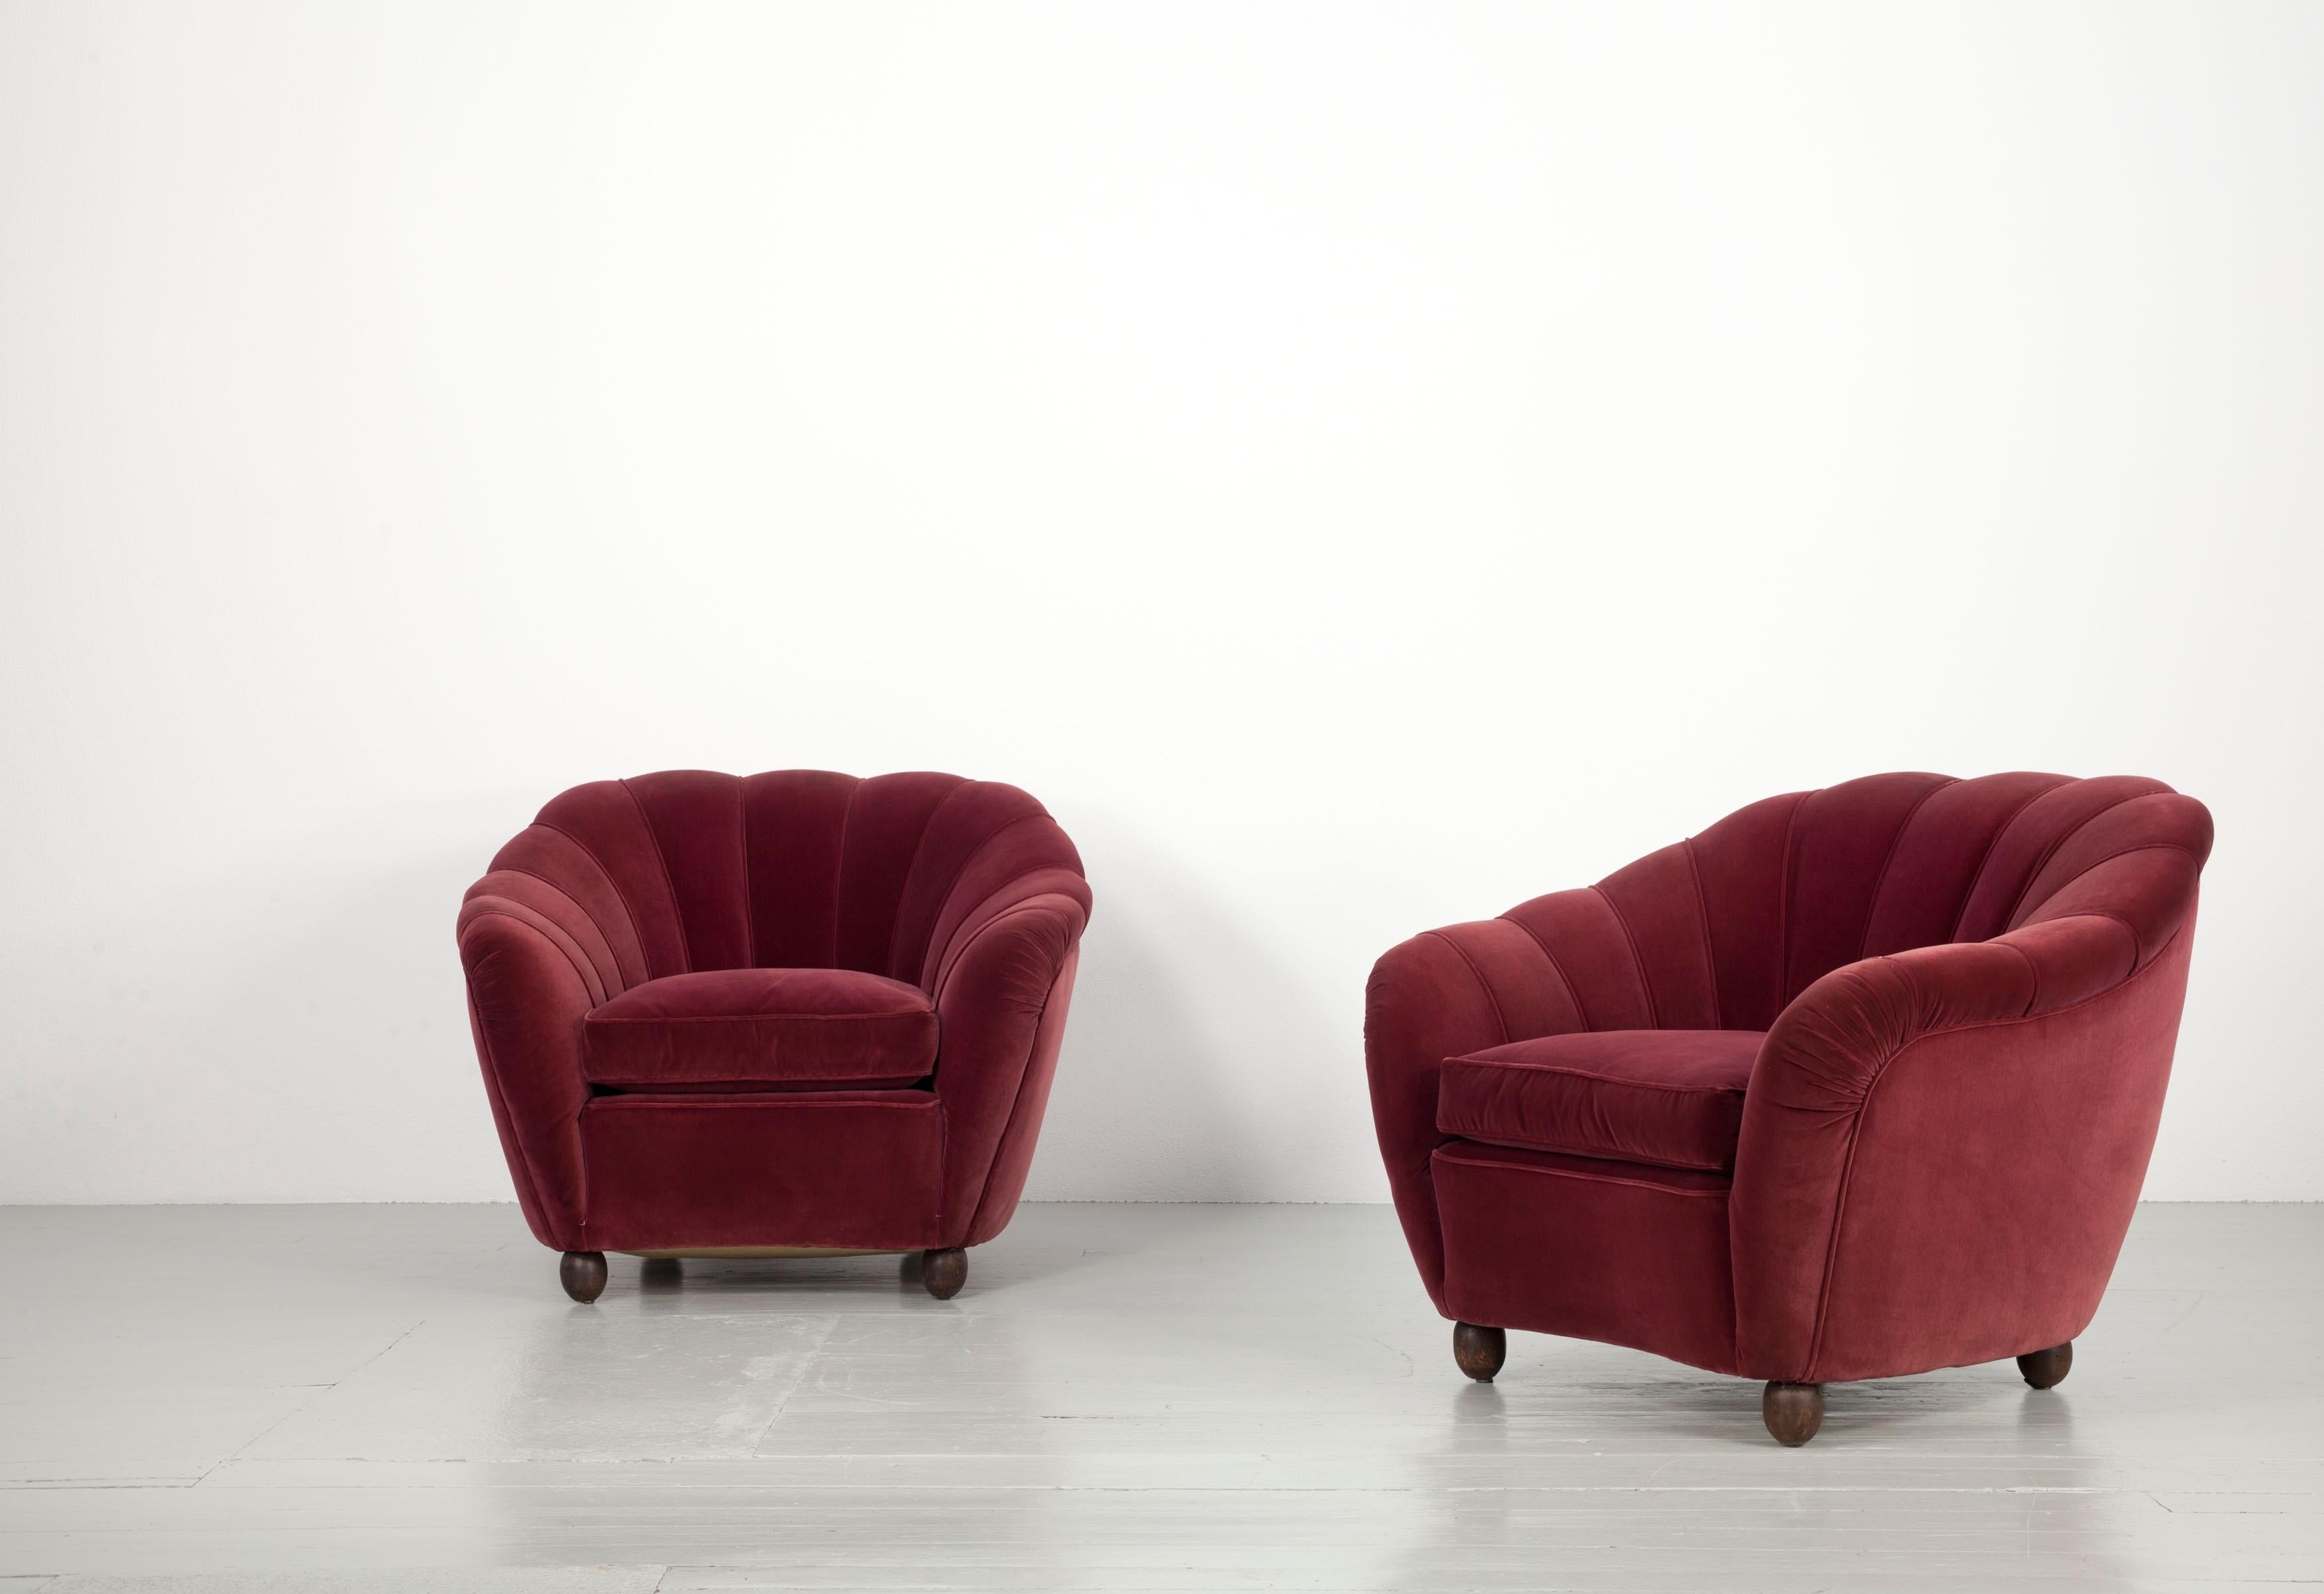 Container furniture direct matte velvet mid century modern tufted living room sofa, 71.7, dark red. Italian Set of a Massive Sofa and Two Armchairs in Dark ...